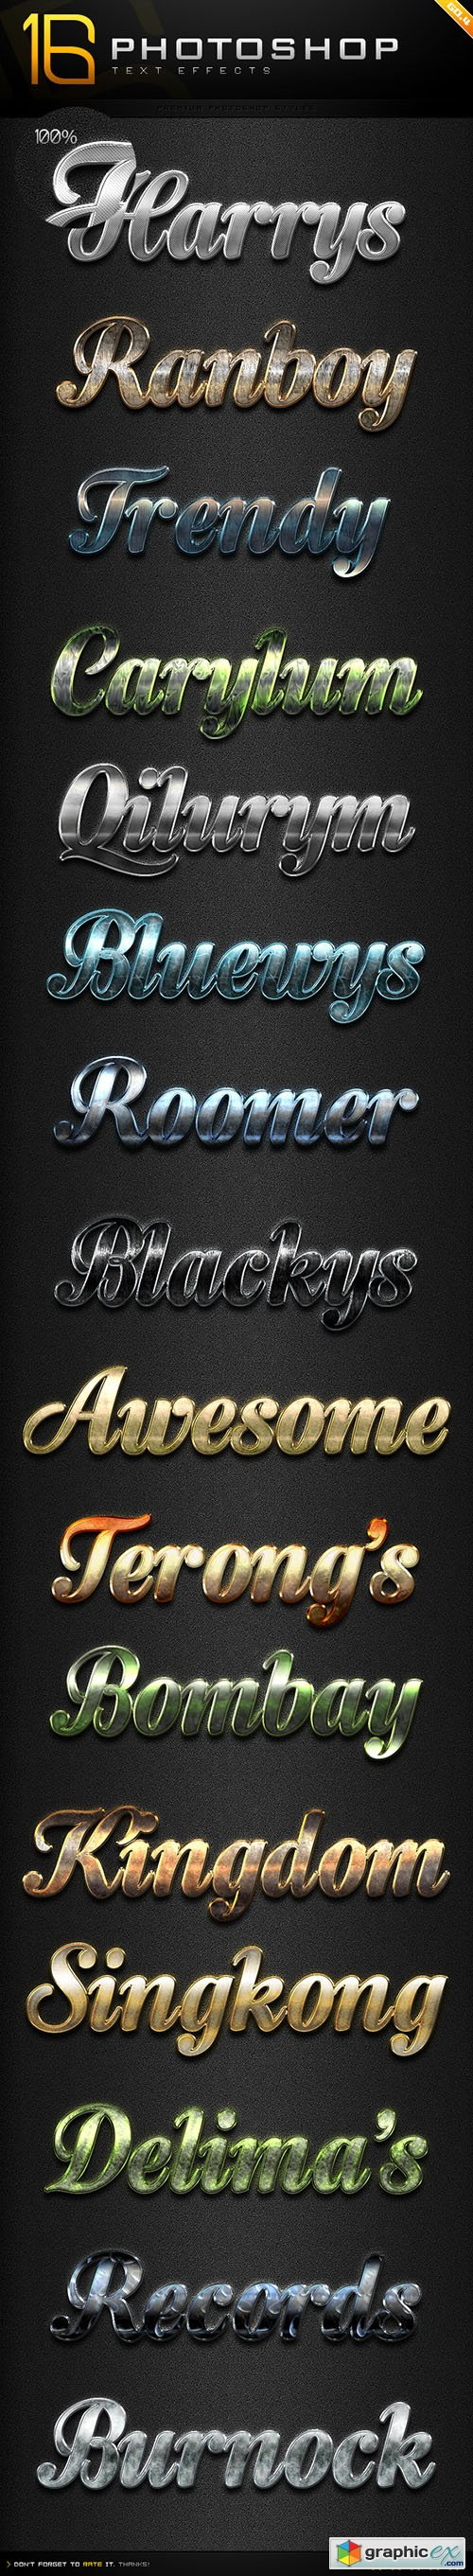 16 Photoshop Text Effect Styles GO 4